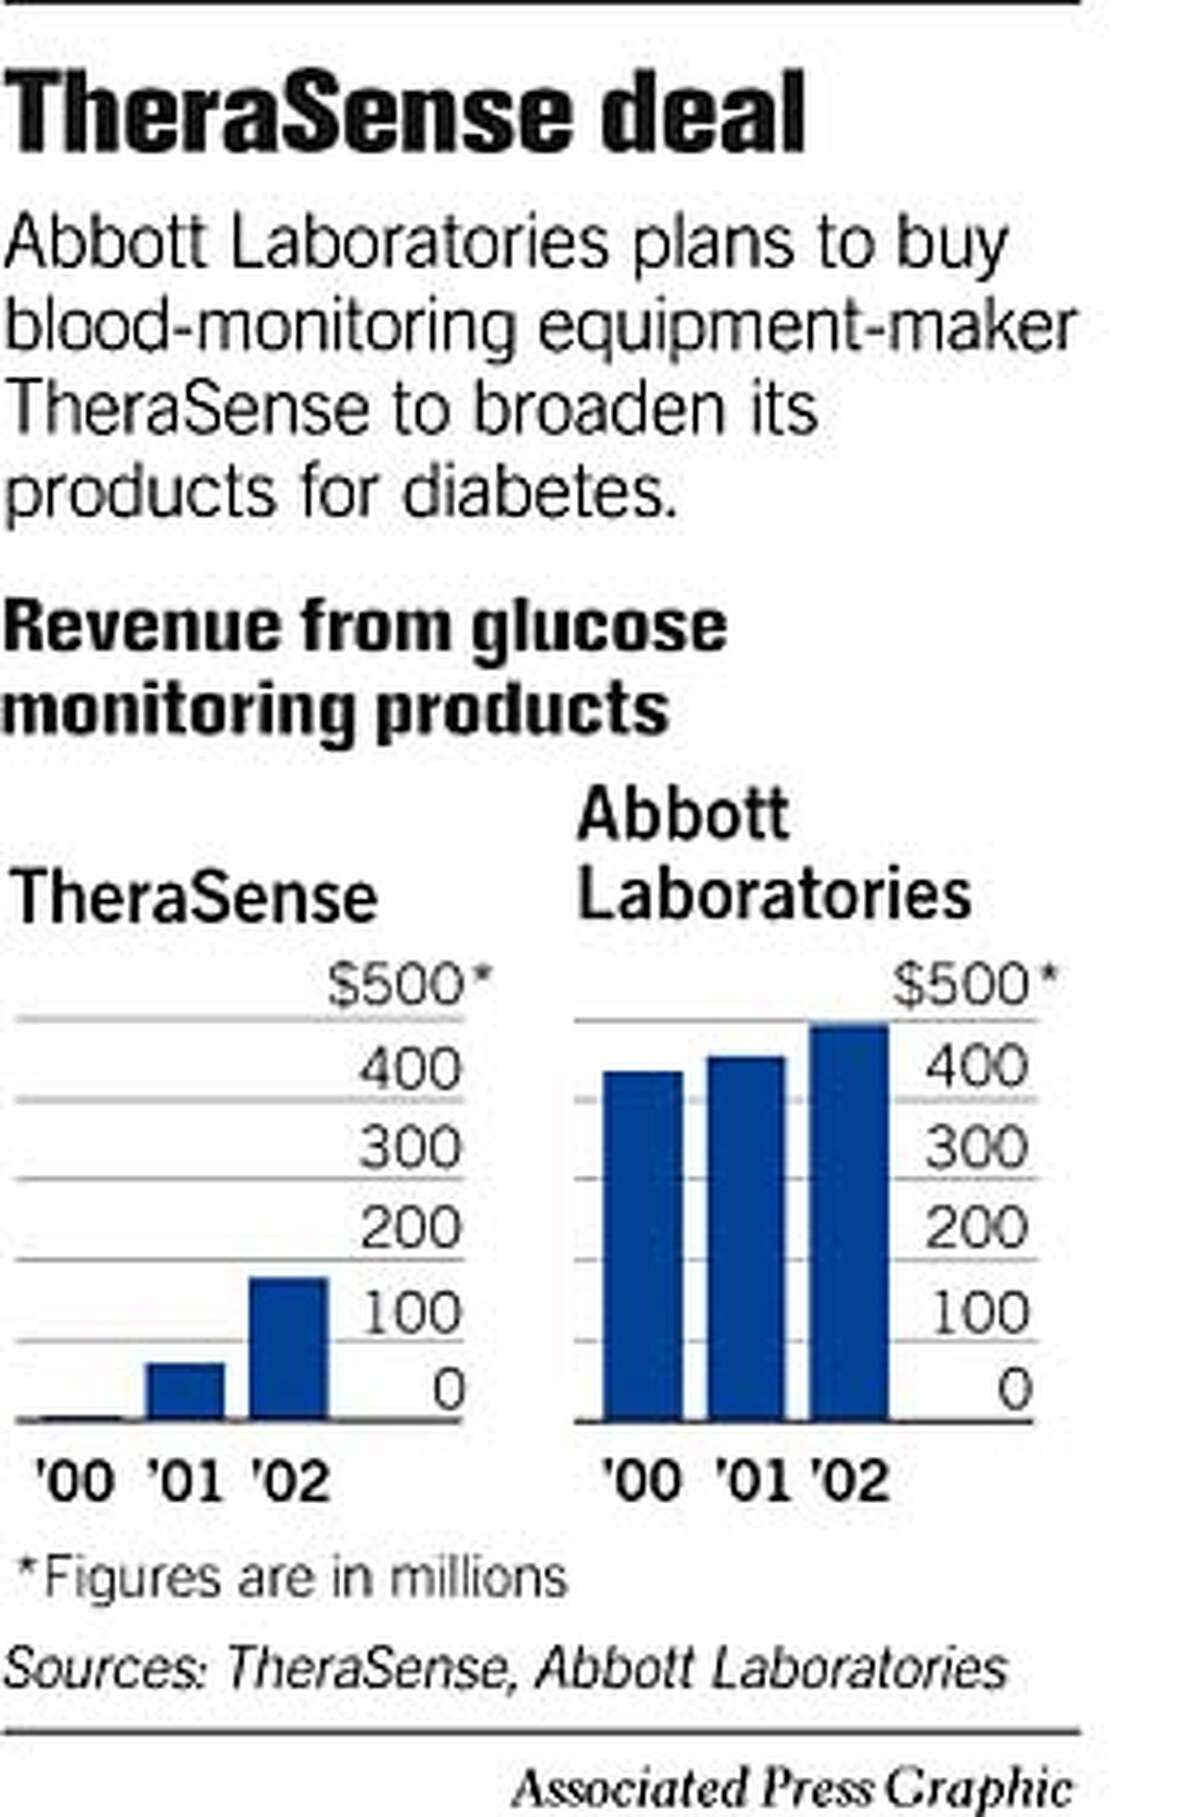 TheraSense Deal. Associated Press Graphic